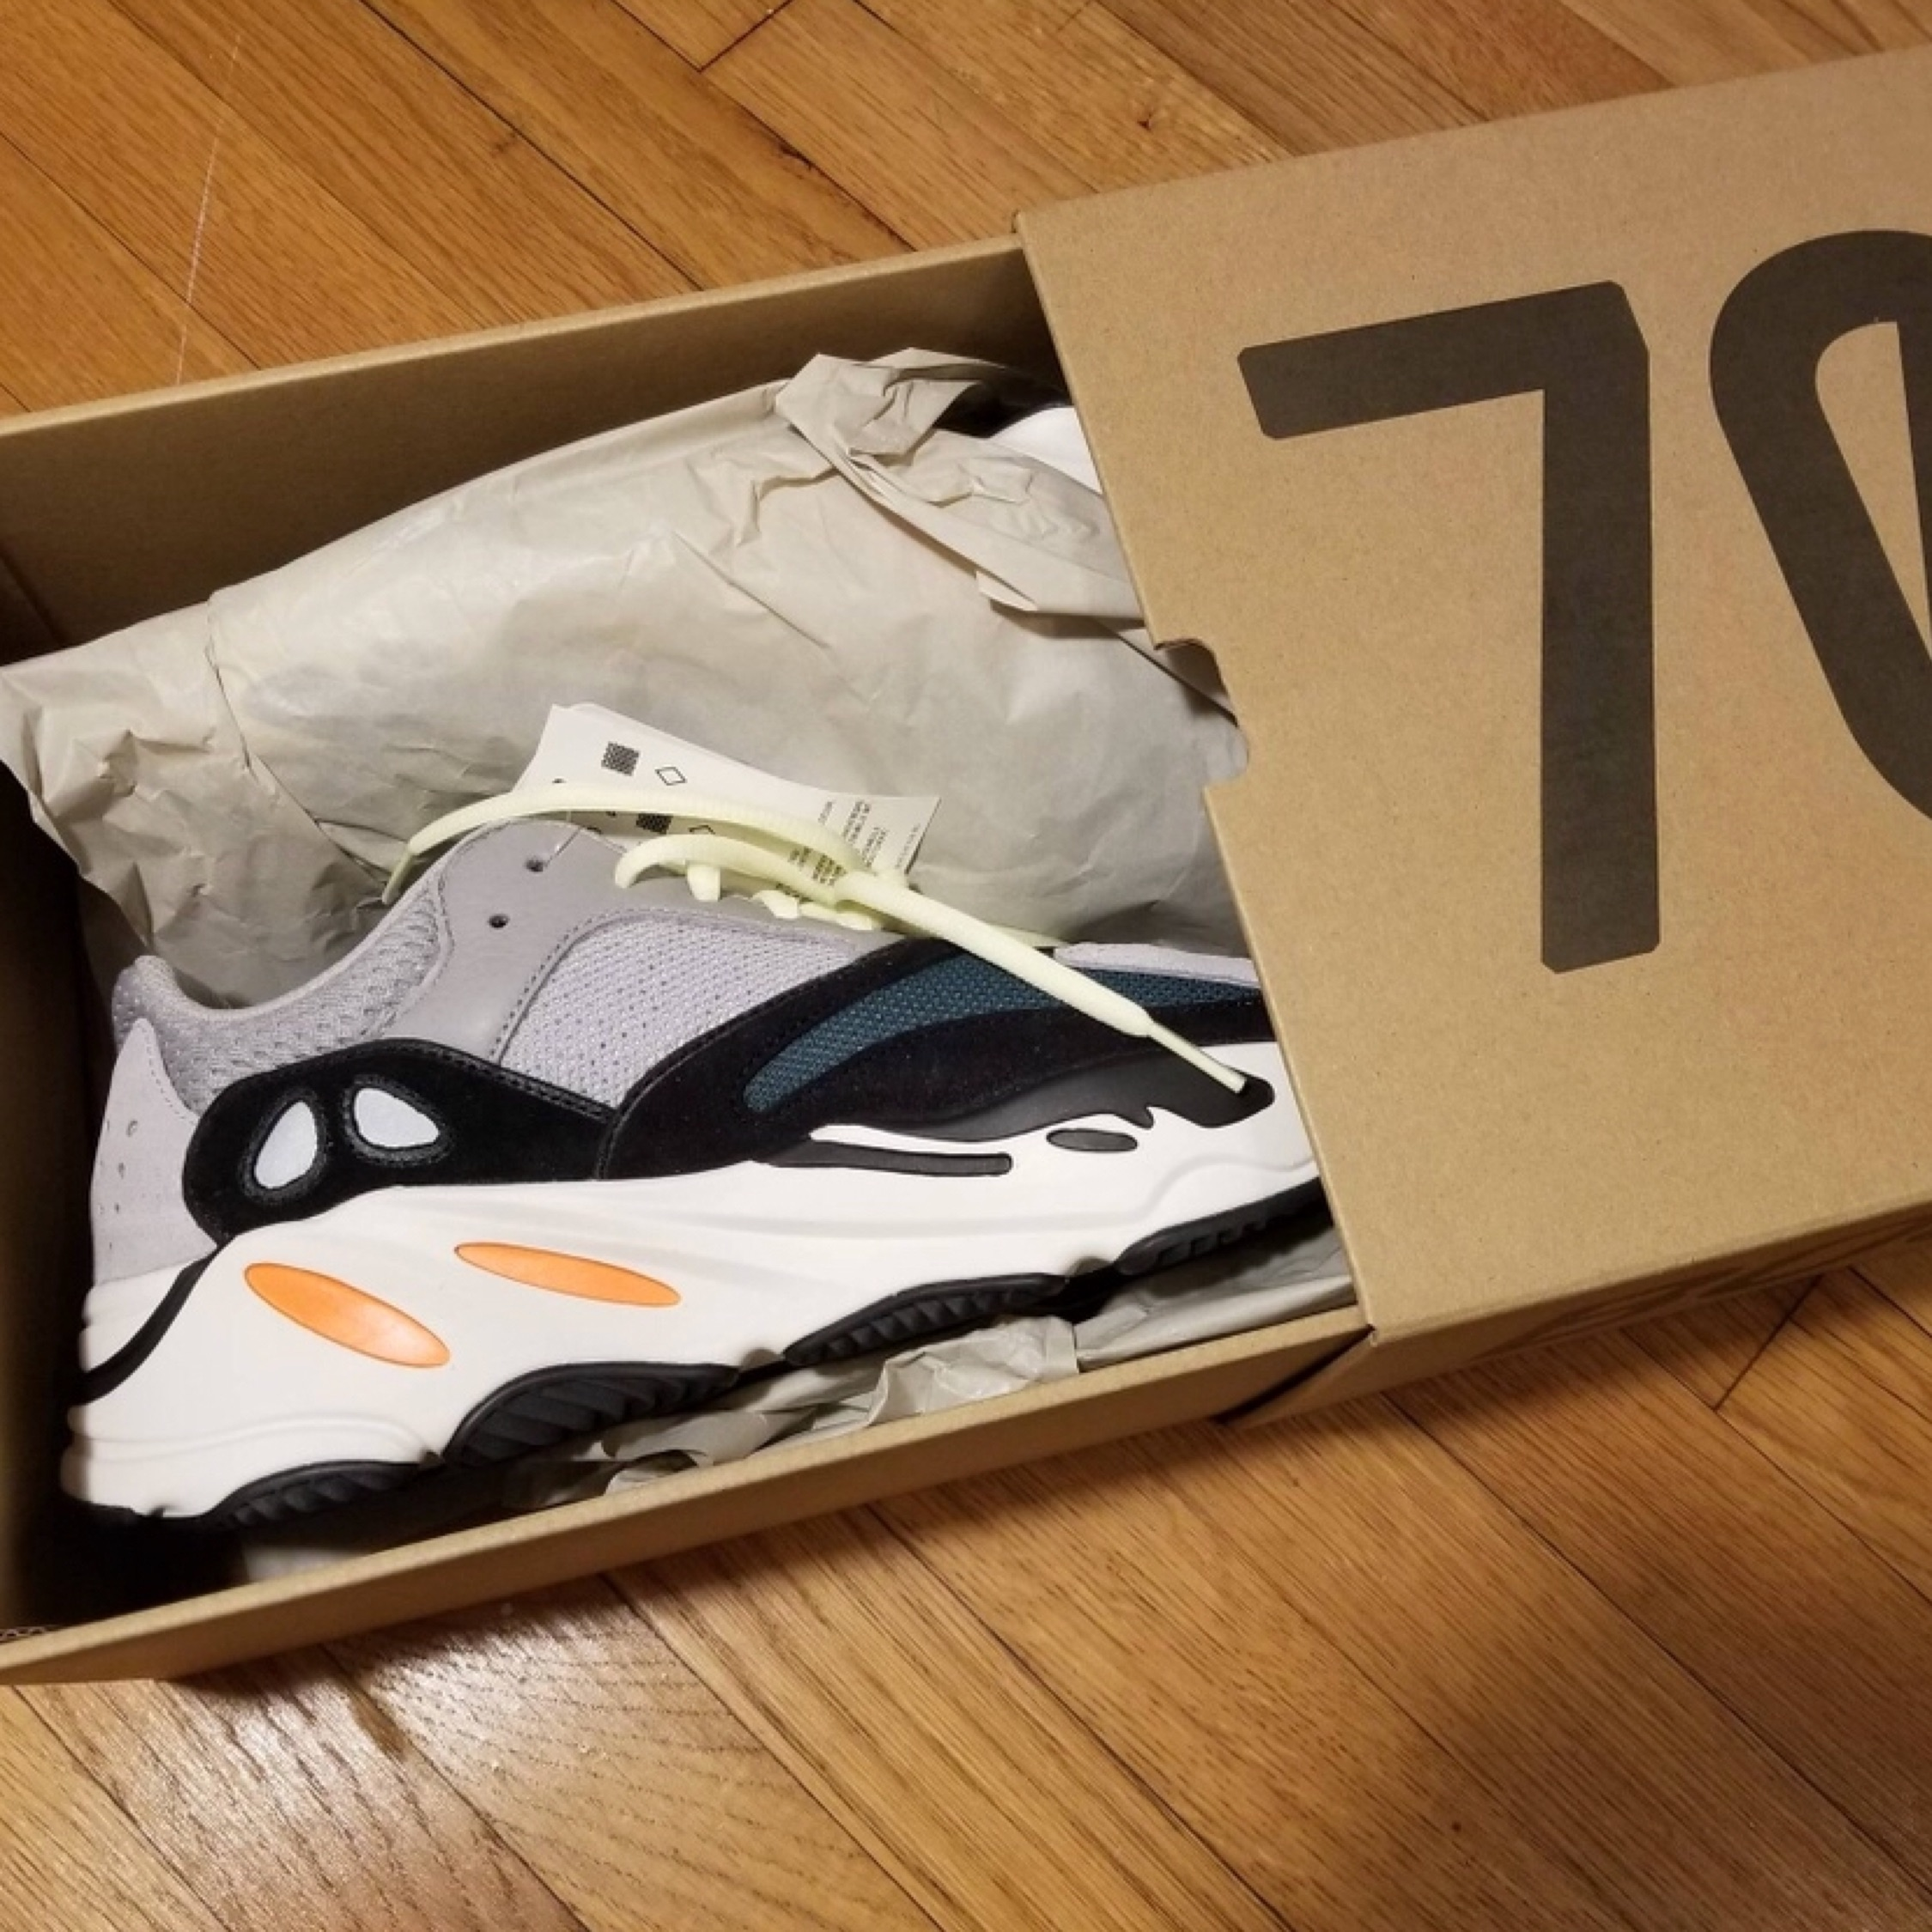 new styles e0c52 241e9 Adidas Yeezy Wave Runner 700 Brand New 7.5